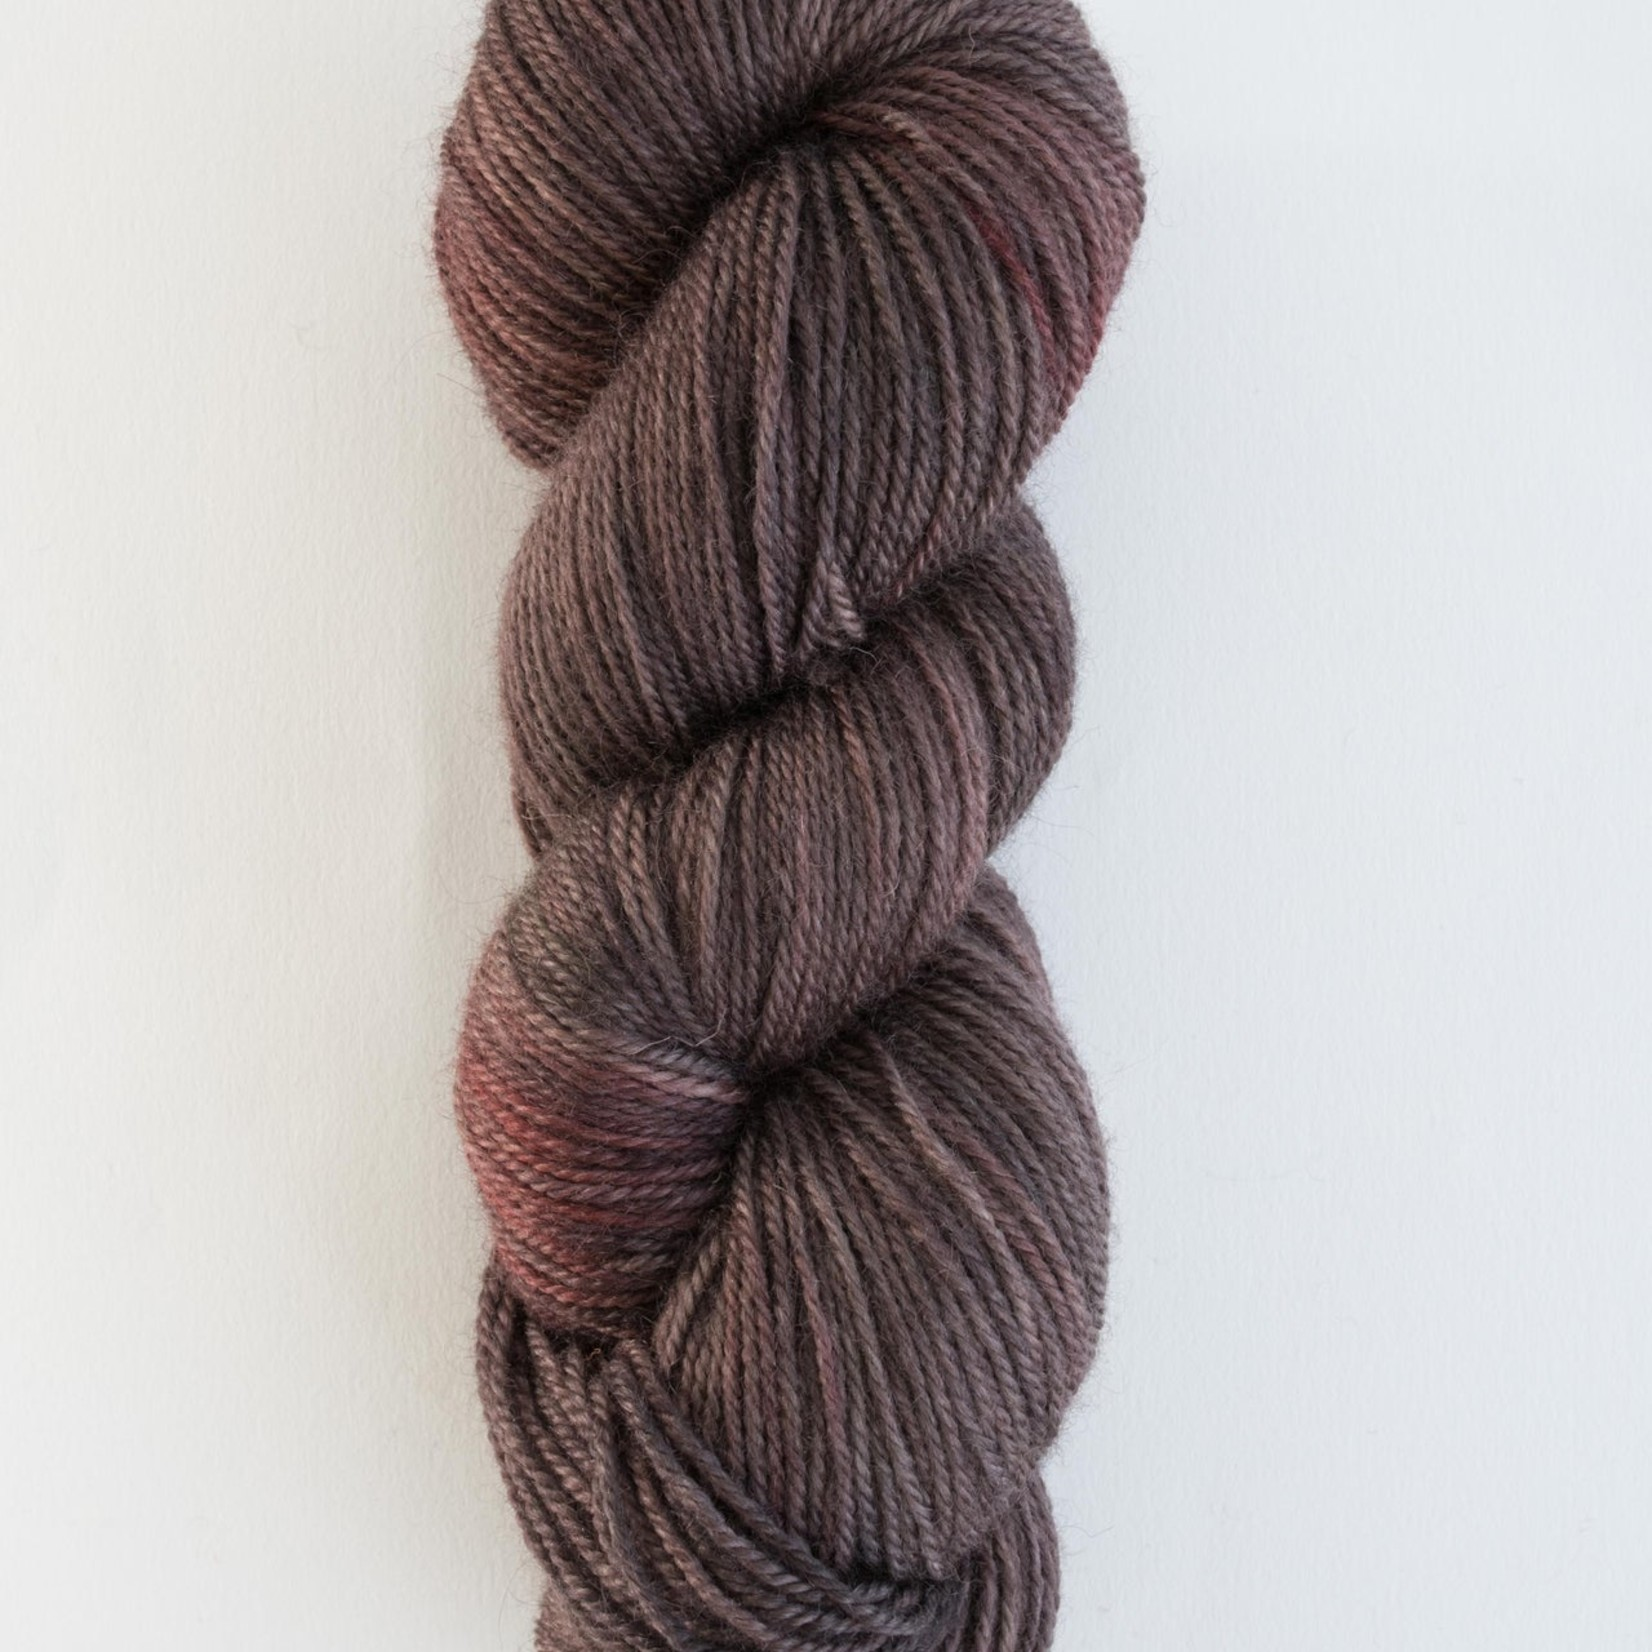 Emily C. Gillies Emily C Gillies - Worsted BFL